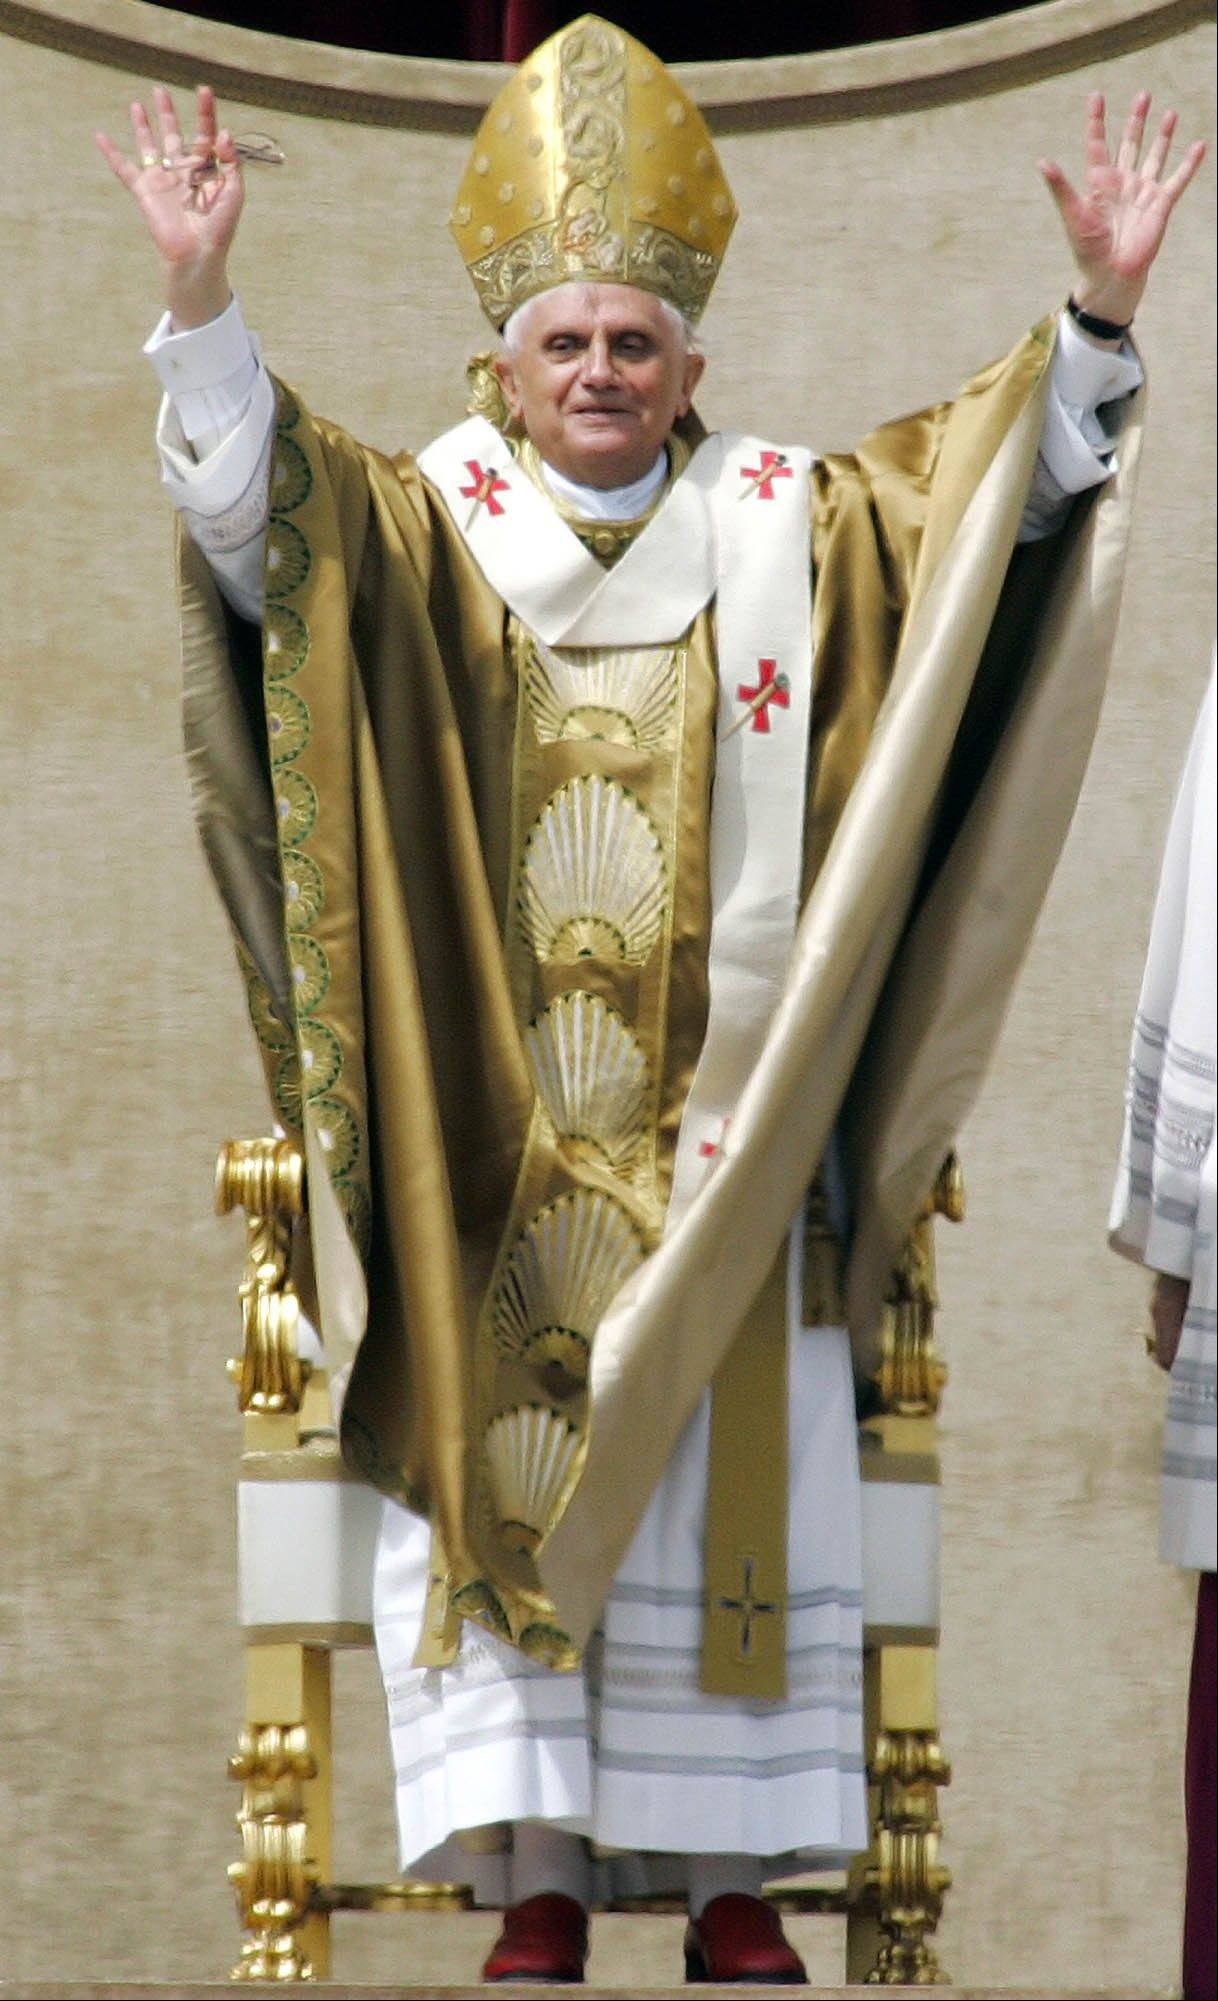 Pope Benedict XVI openshis arms as he celebrates his installment Mass in St. Peter's Square at the Vatican.